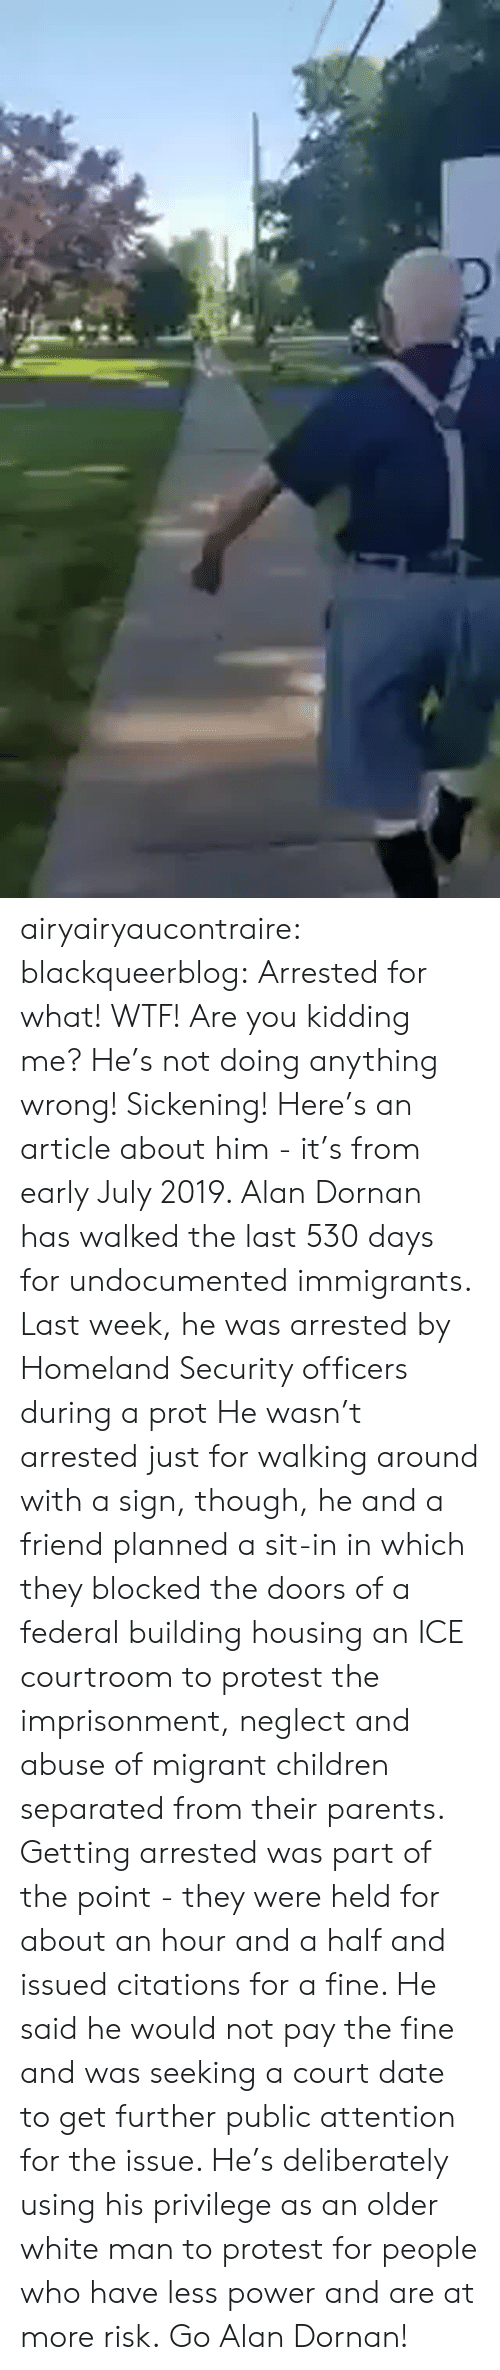 Children, News, and Parents: airyairyaucontraire:  blackqueerblog:  Arrested for what! WTF! Are you kidding me? He's not doing anything wrong! Sickening!  Here's an article about him - it's from early July 2019.  Alan Dornan has walked the last 530 days for undocumented immigrants. Last week, he was arrested by Homeland Security officers during a prot He wasn't arrested just for walking around with a sign, though, he and a friend planned a sit-in in which they blocked the doors of a federal building housing an ICE courtroom to protest the imprisonment, neglect and abuse of migrant children separated from their parents.  Getting arrested was part of the point - they were held for about an hour and a half and issued citations for a fine. He said he would not pay the fine and was seeking a court date to get further public attention for the issue.  He's deliberately using his privilege as an older white man to protest for people who have less power and are at more risk. Go Alan Dornan!